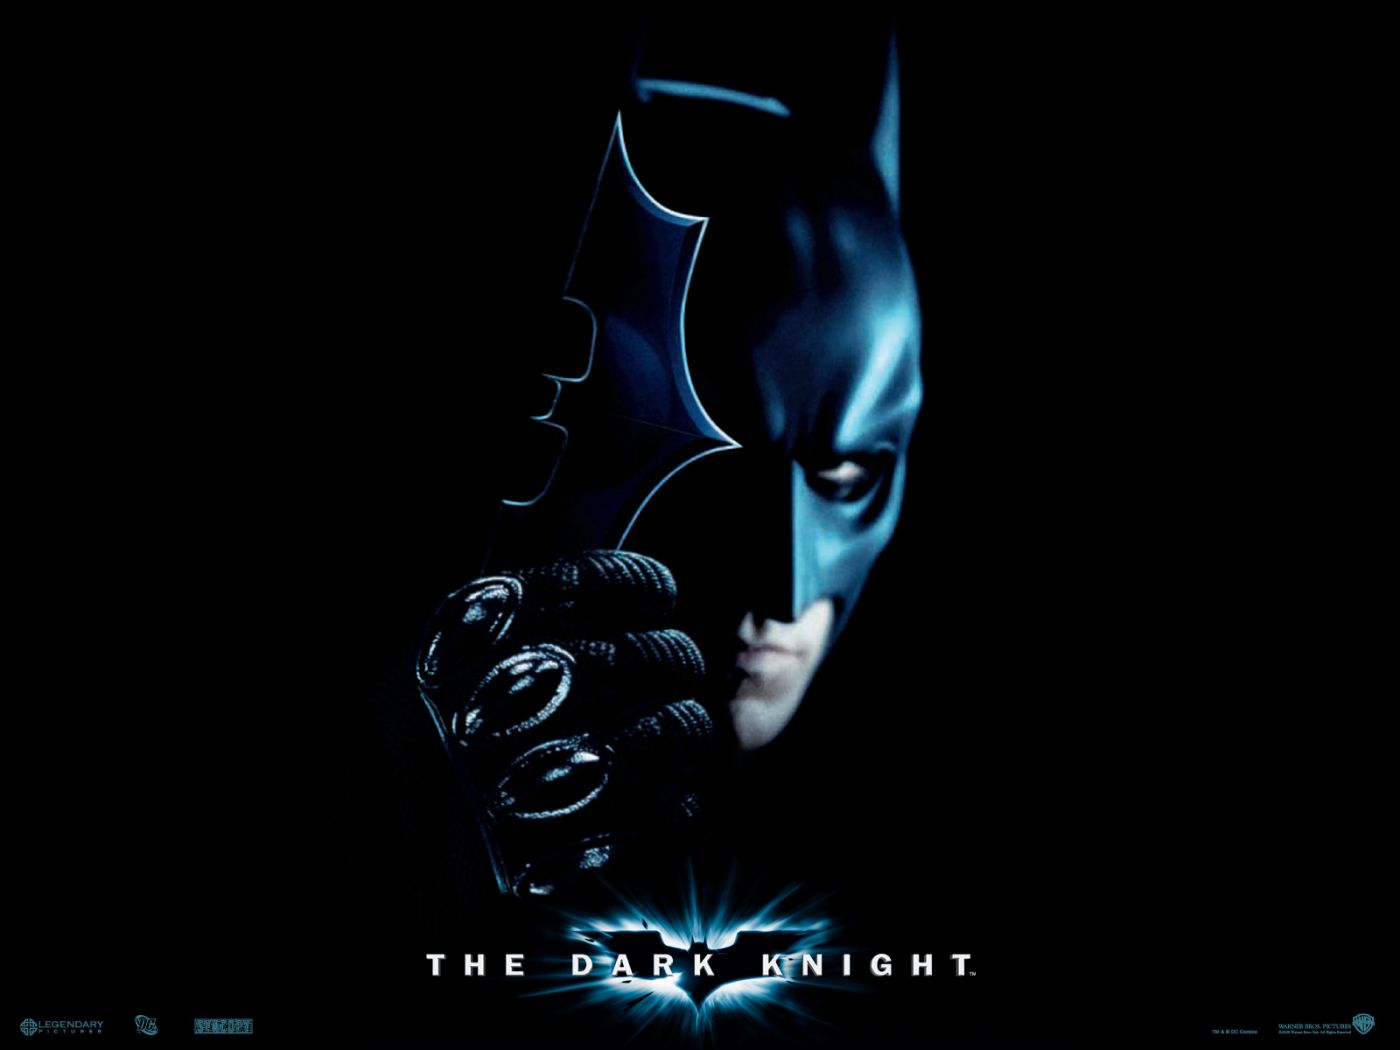 Batman Holding Metal Bat Emblem Wallpaper 1400x1050